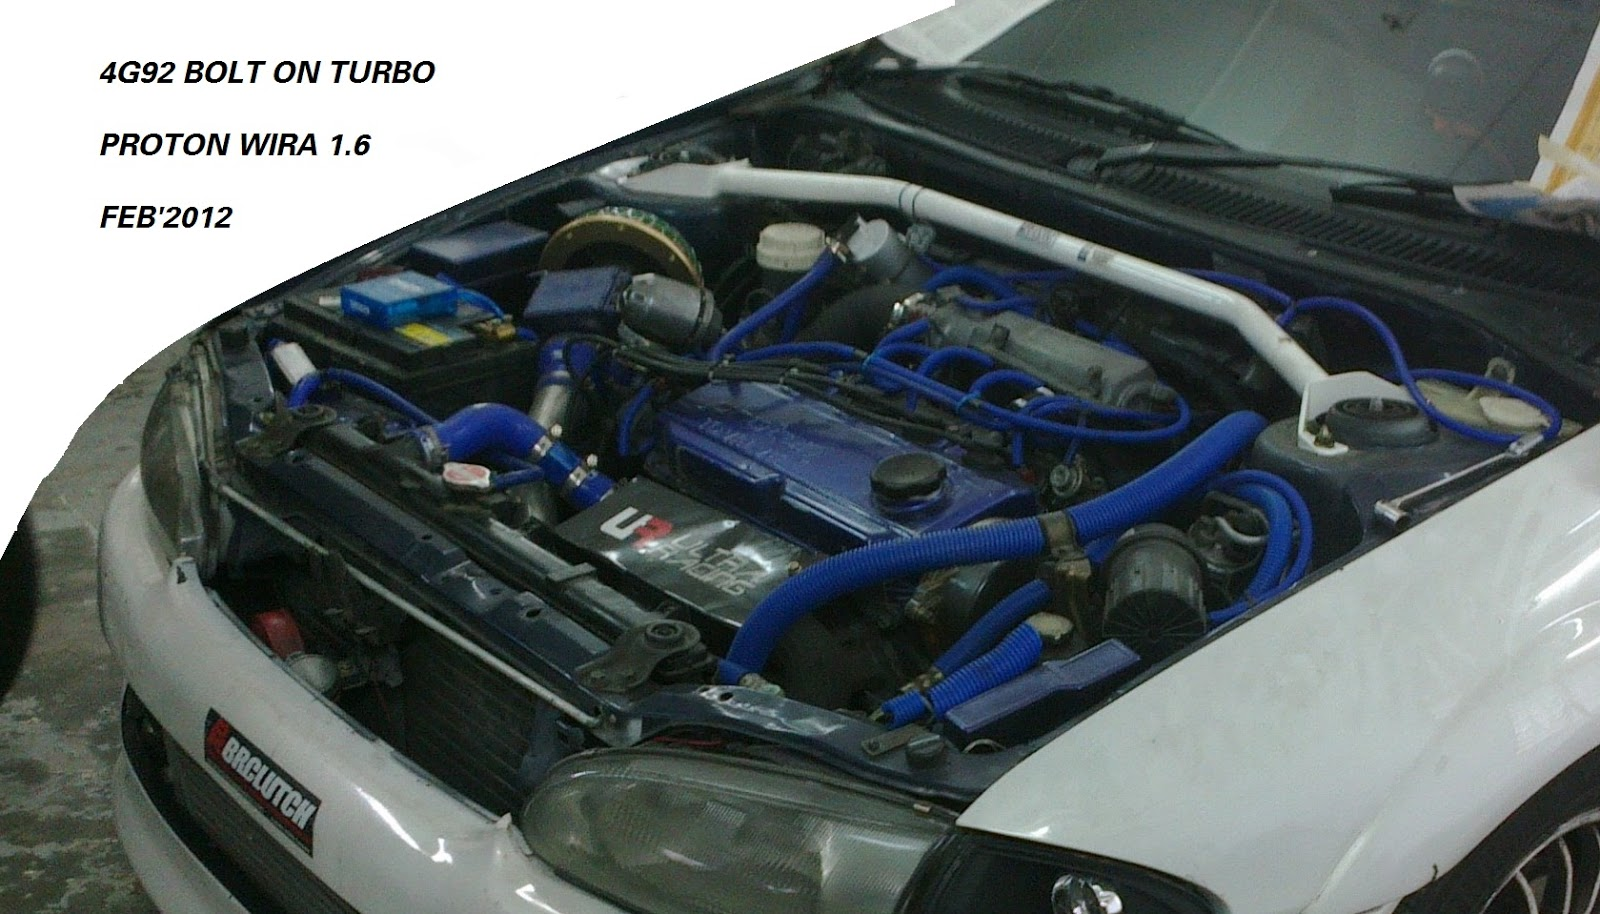 licence to speed for n automotive clean engine bays tuesday 3 2012